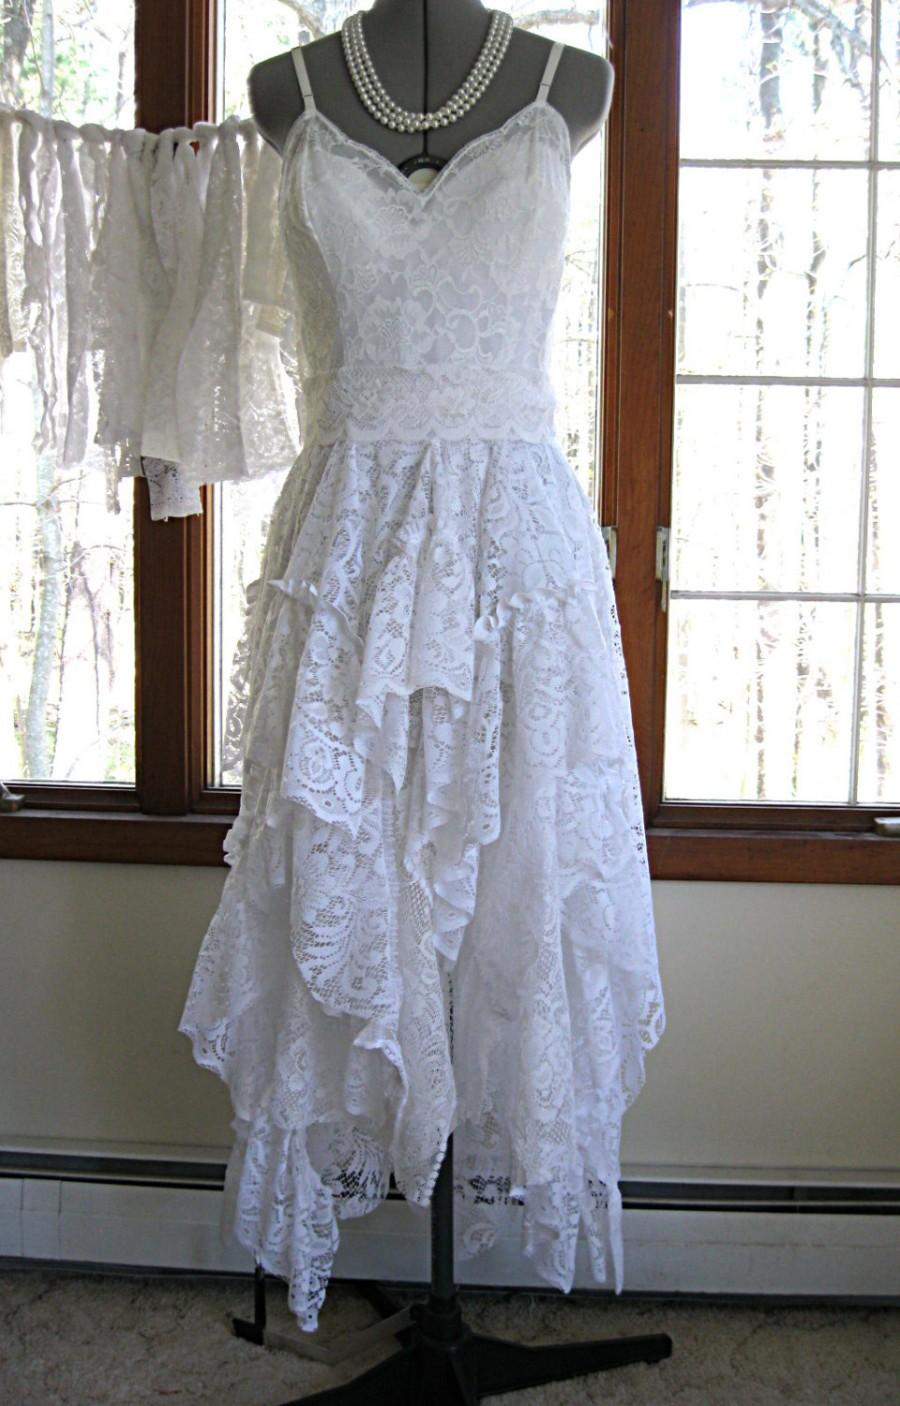 White Off Boho Gypsy Hippie Alternative Bride Tattered Wedding Dress Recycled Vintage Laces Size 4 6 By Lily Whitepad